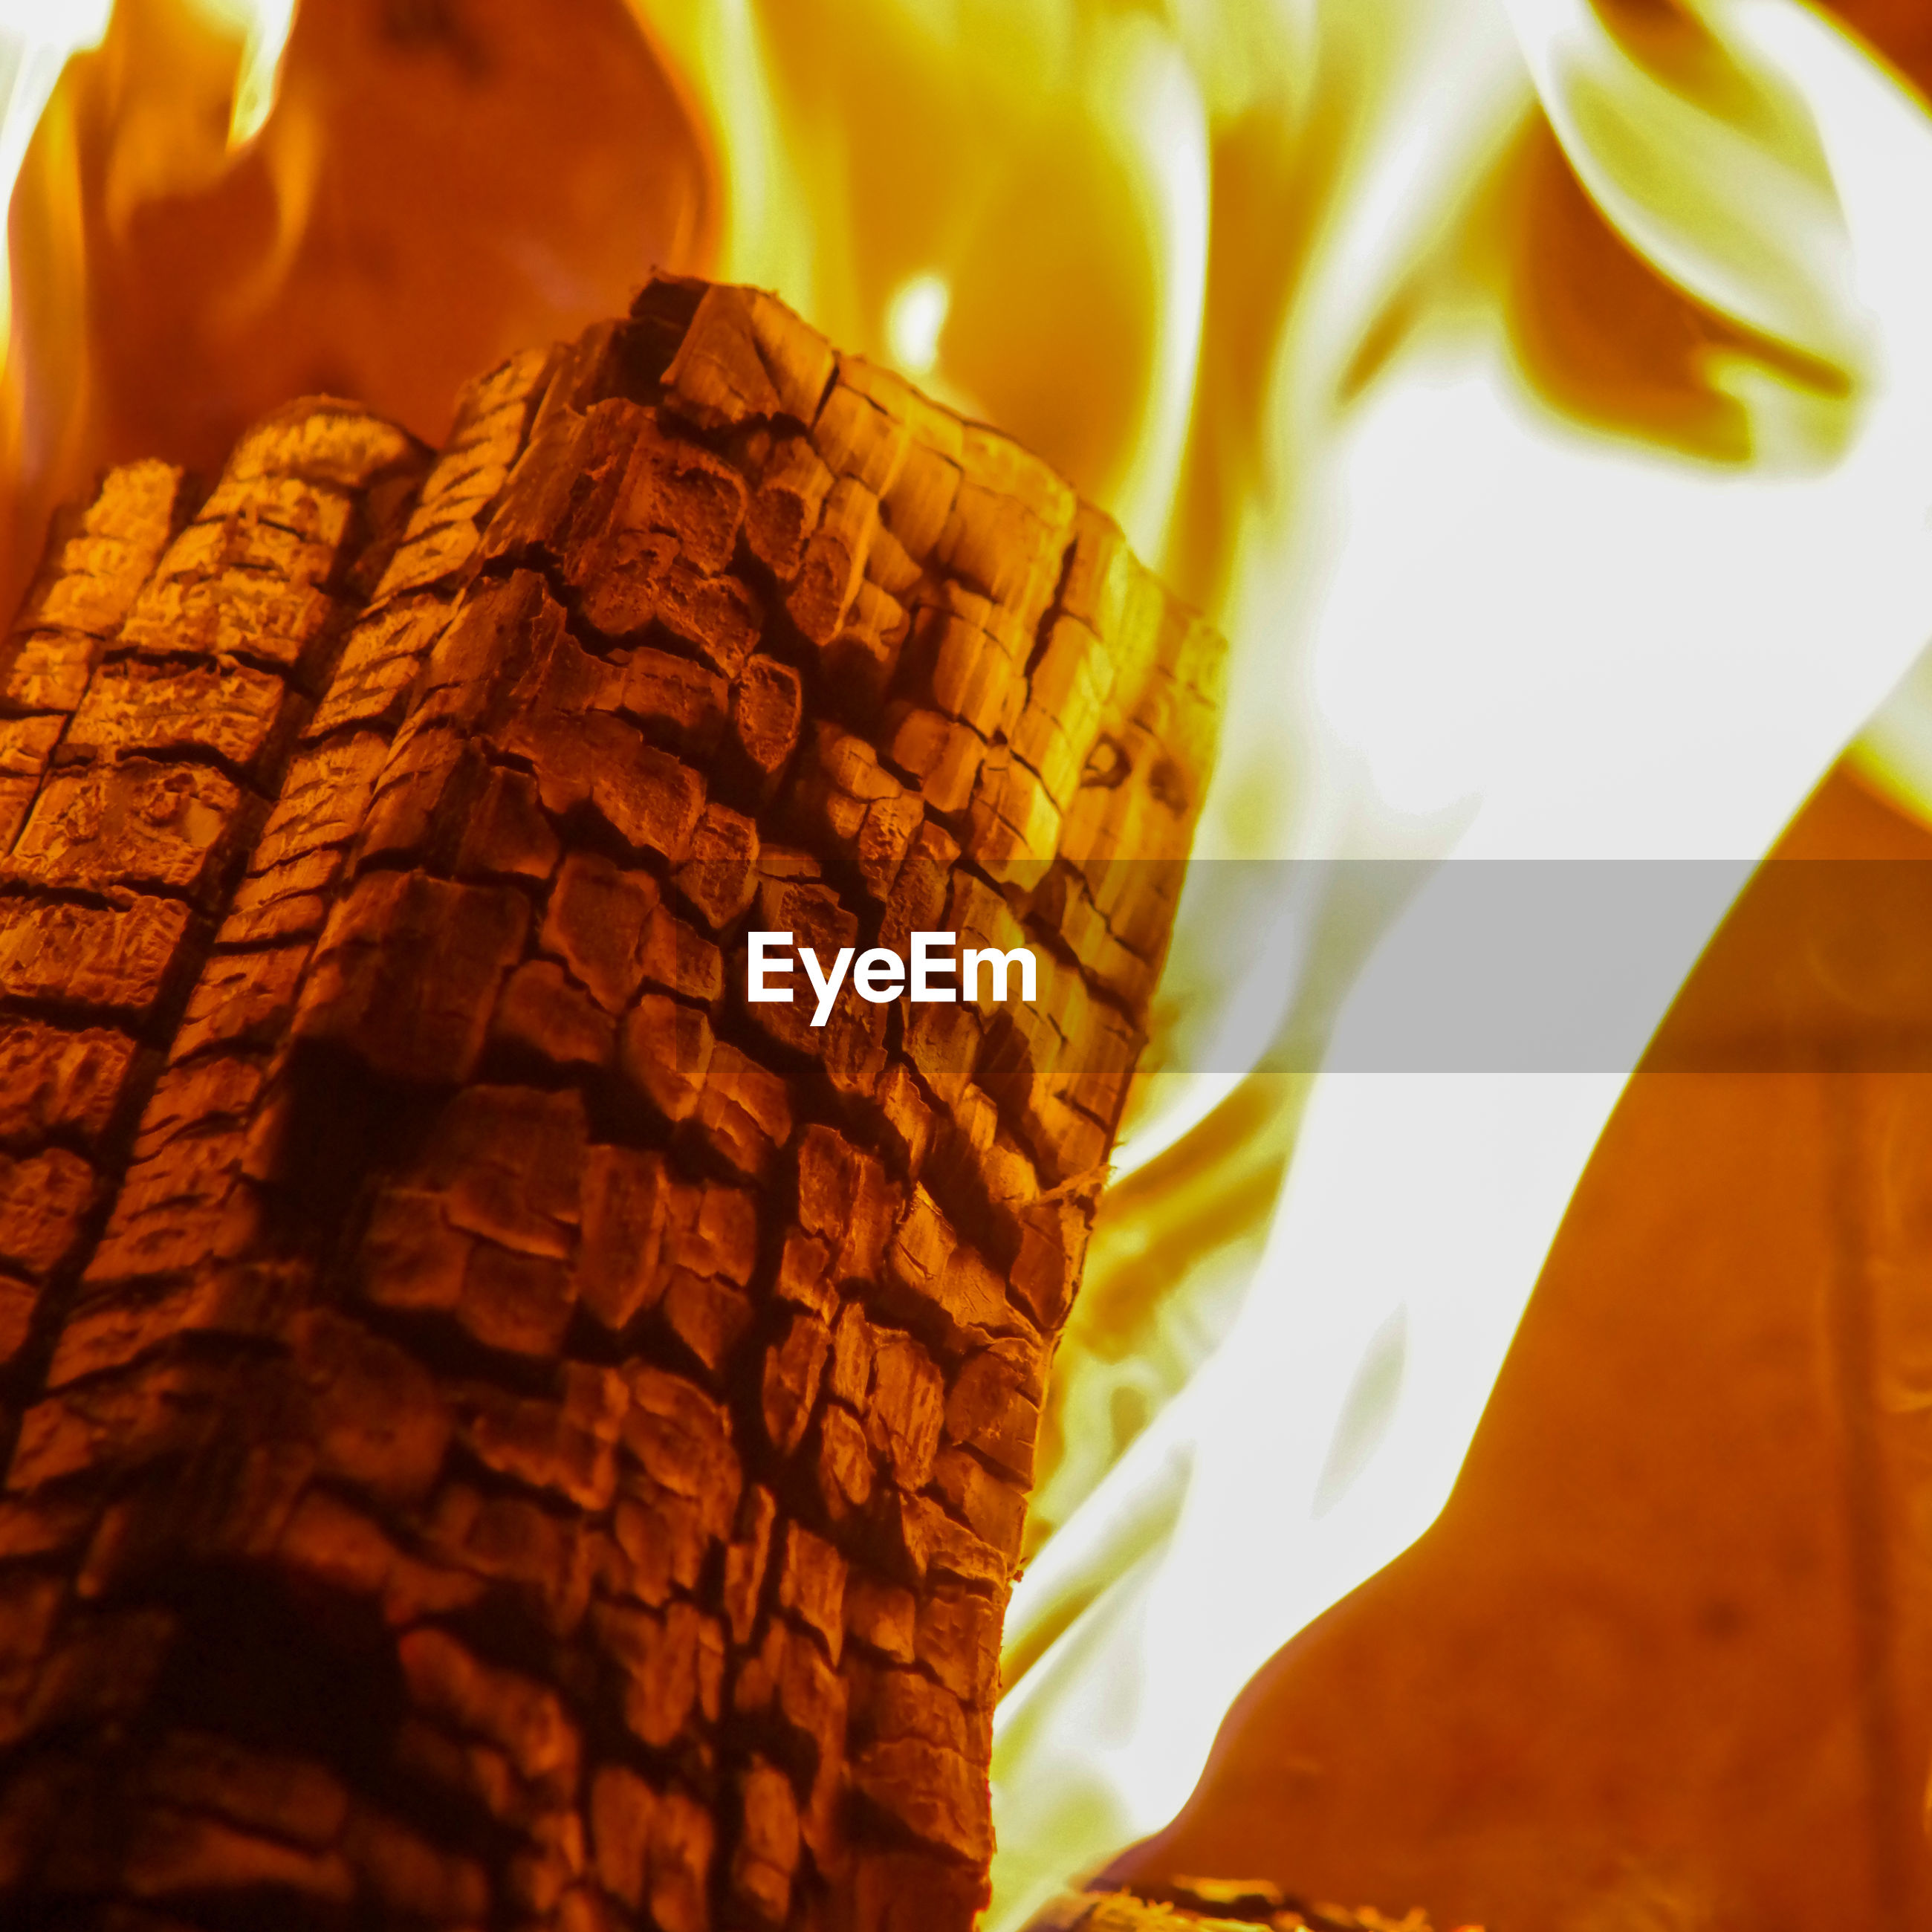 Close-up of burning log in fireplace with leaping flame